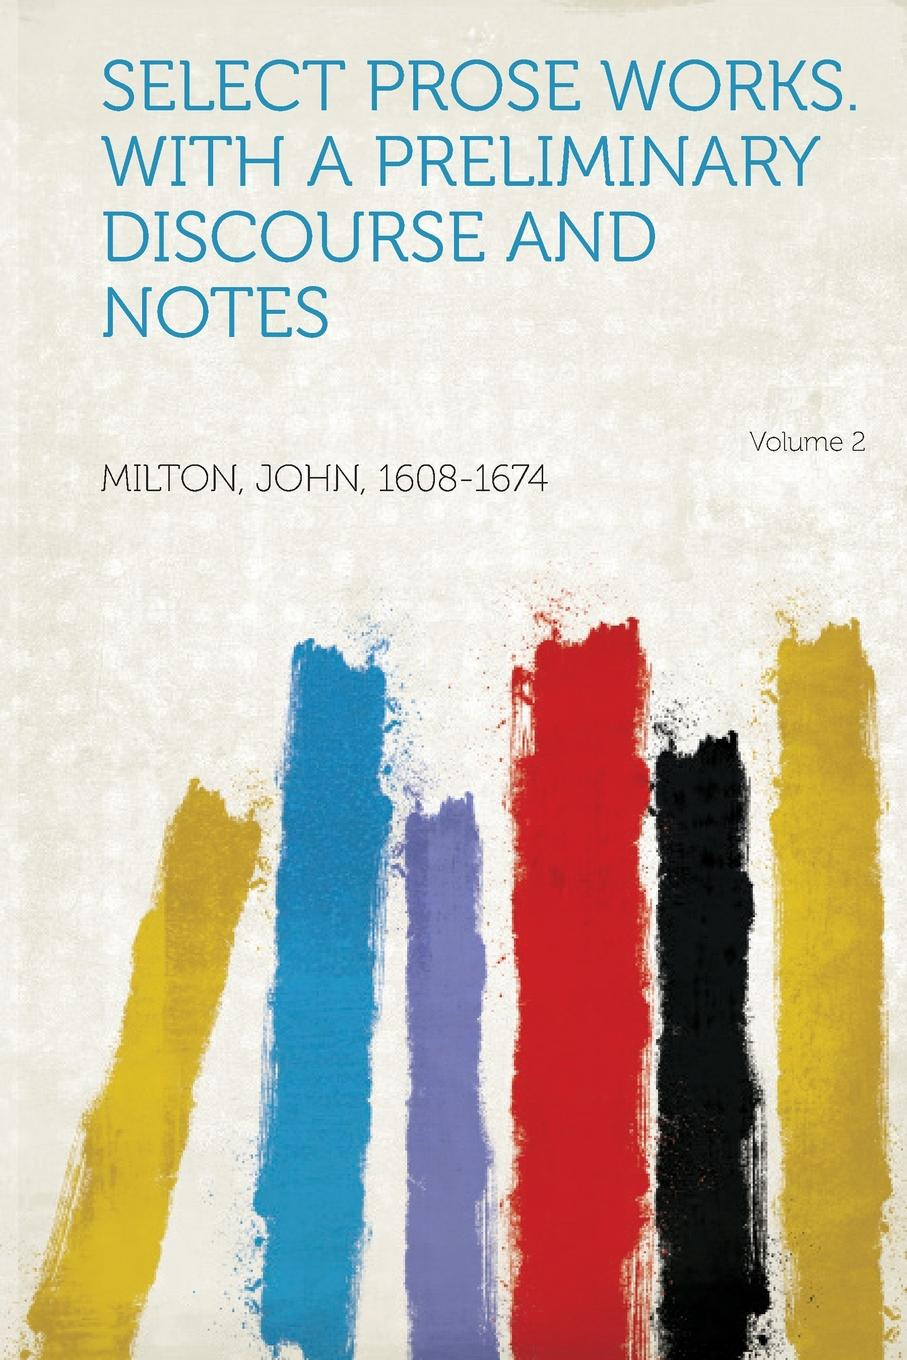 Select Prose Works. with a Preliminary Discourse and Notes Volume 2